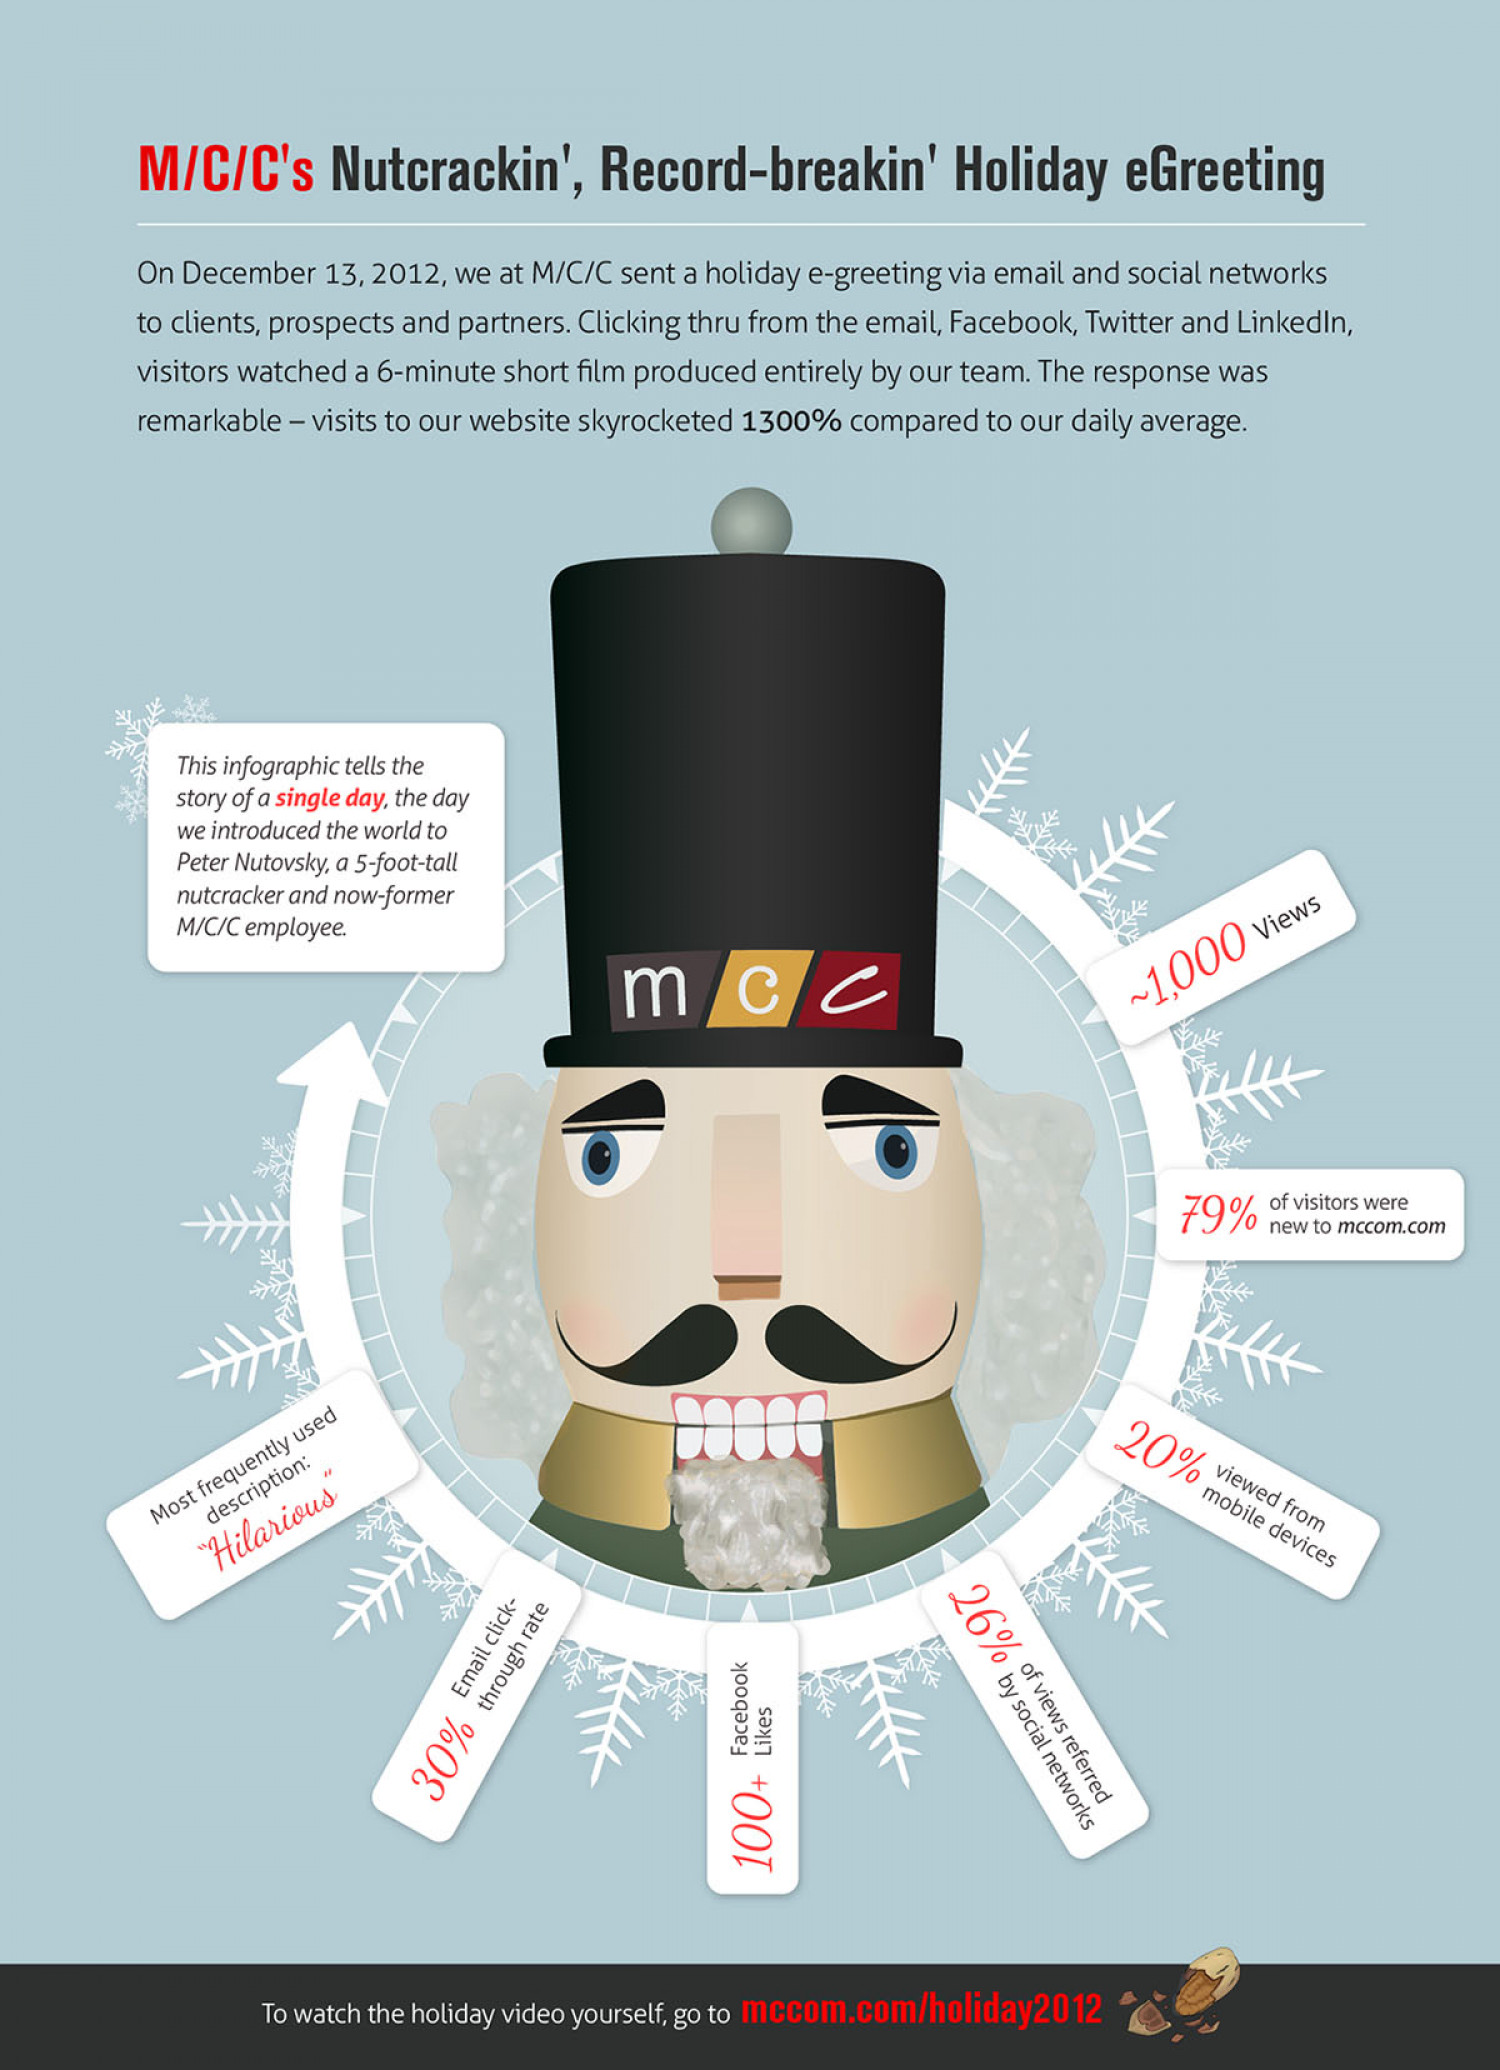 M/C/C's Nutcrackin', Record-breakin' Holiday eGreeting Infographic